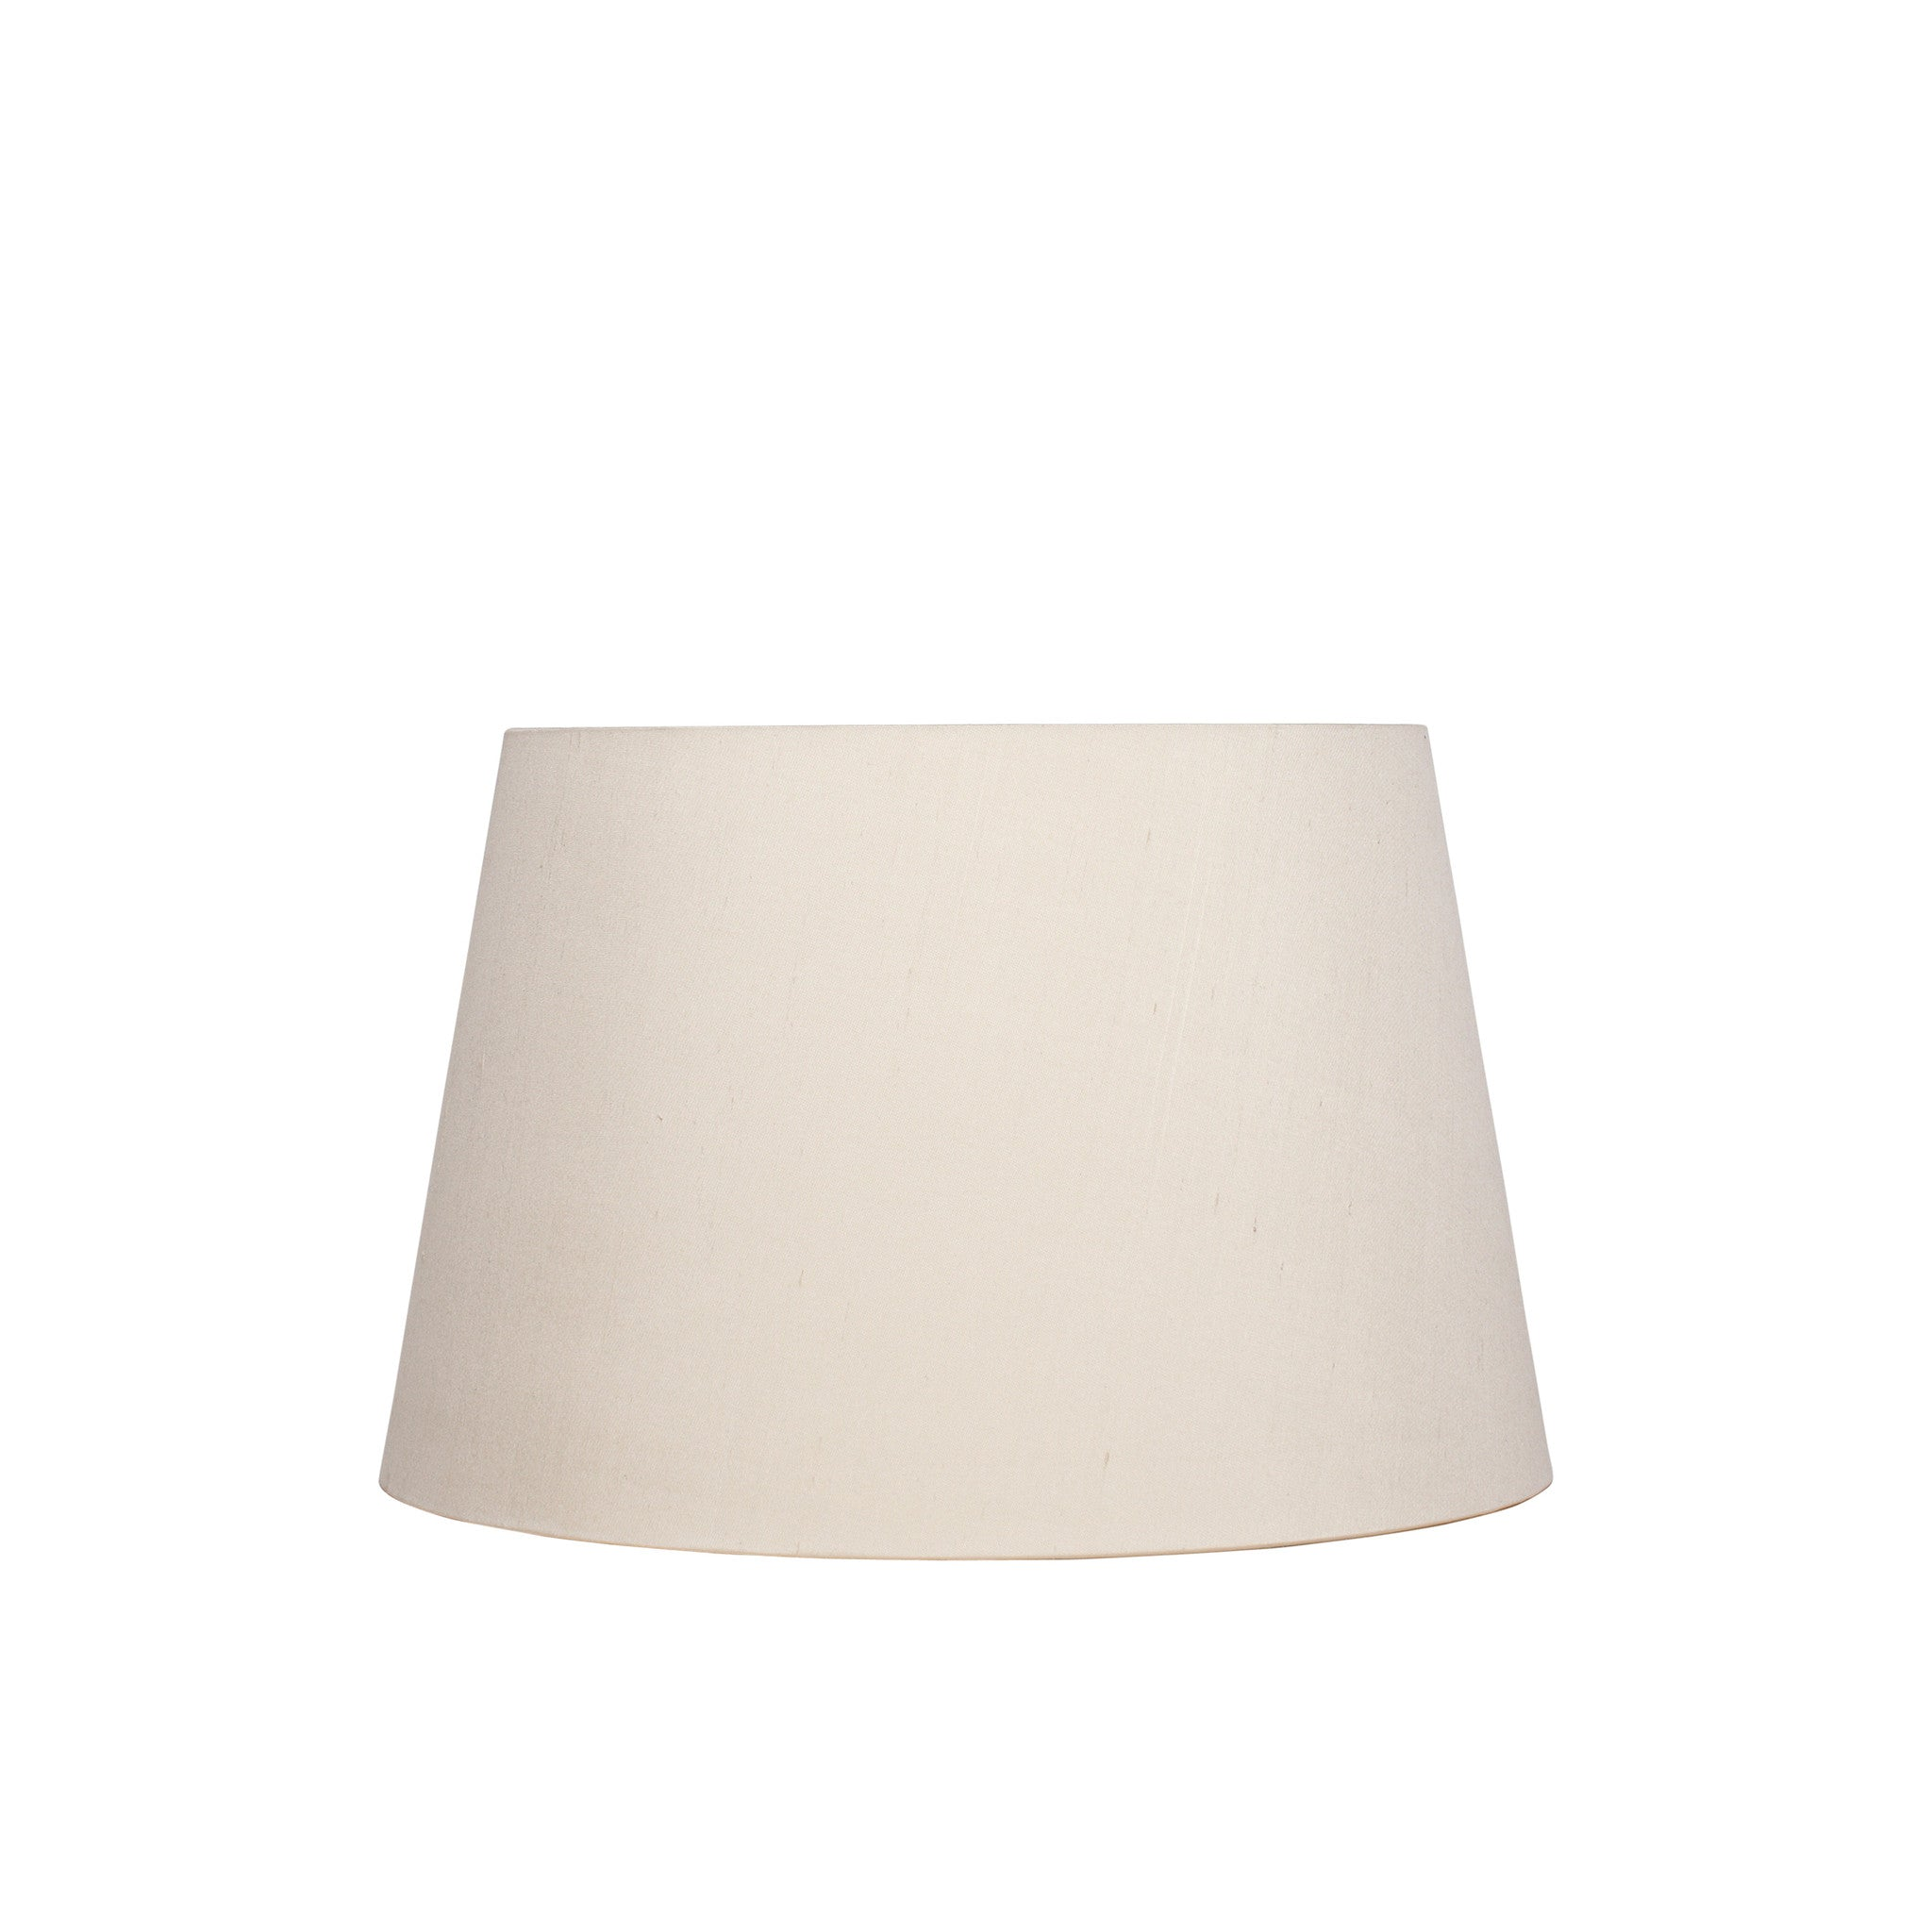 Large stretched silk Lampshade in Cream